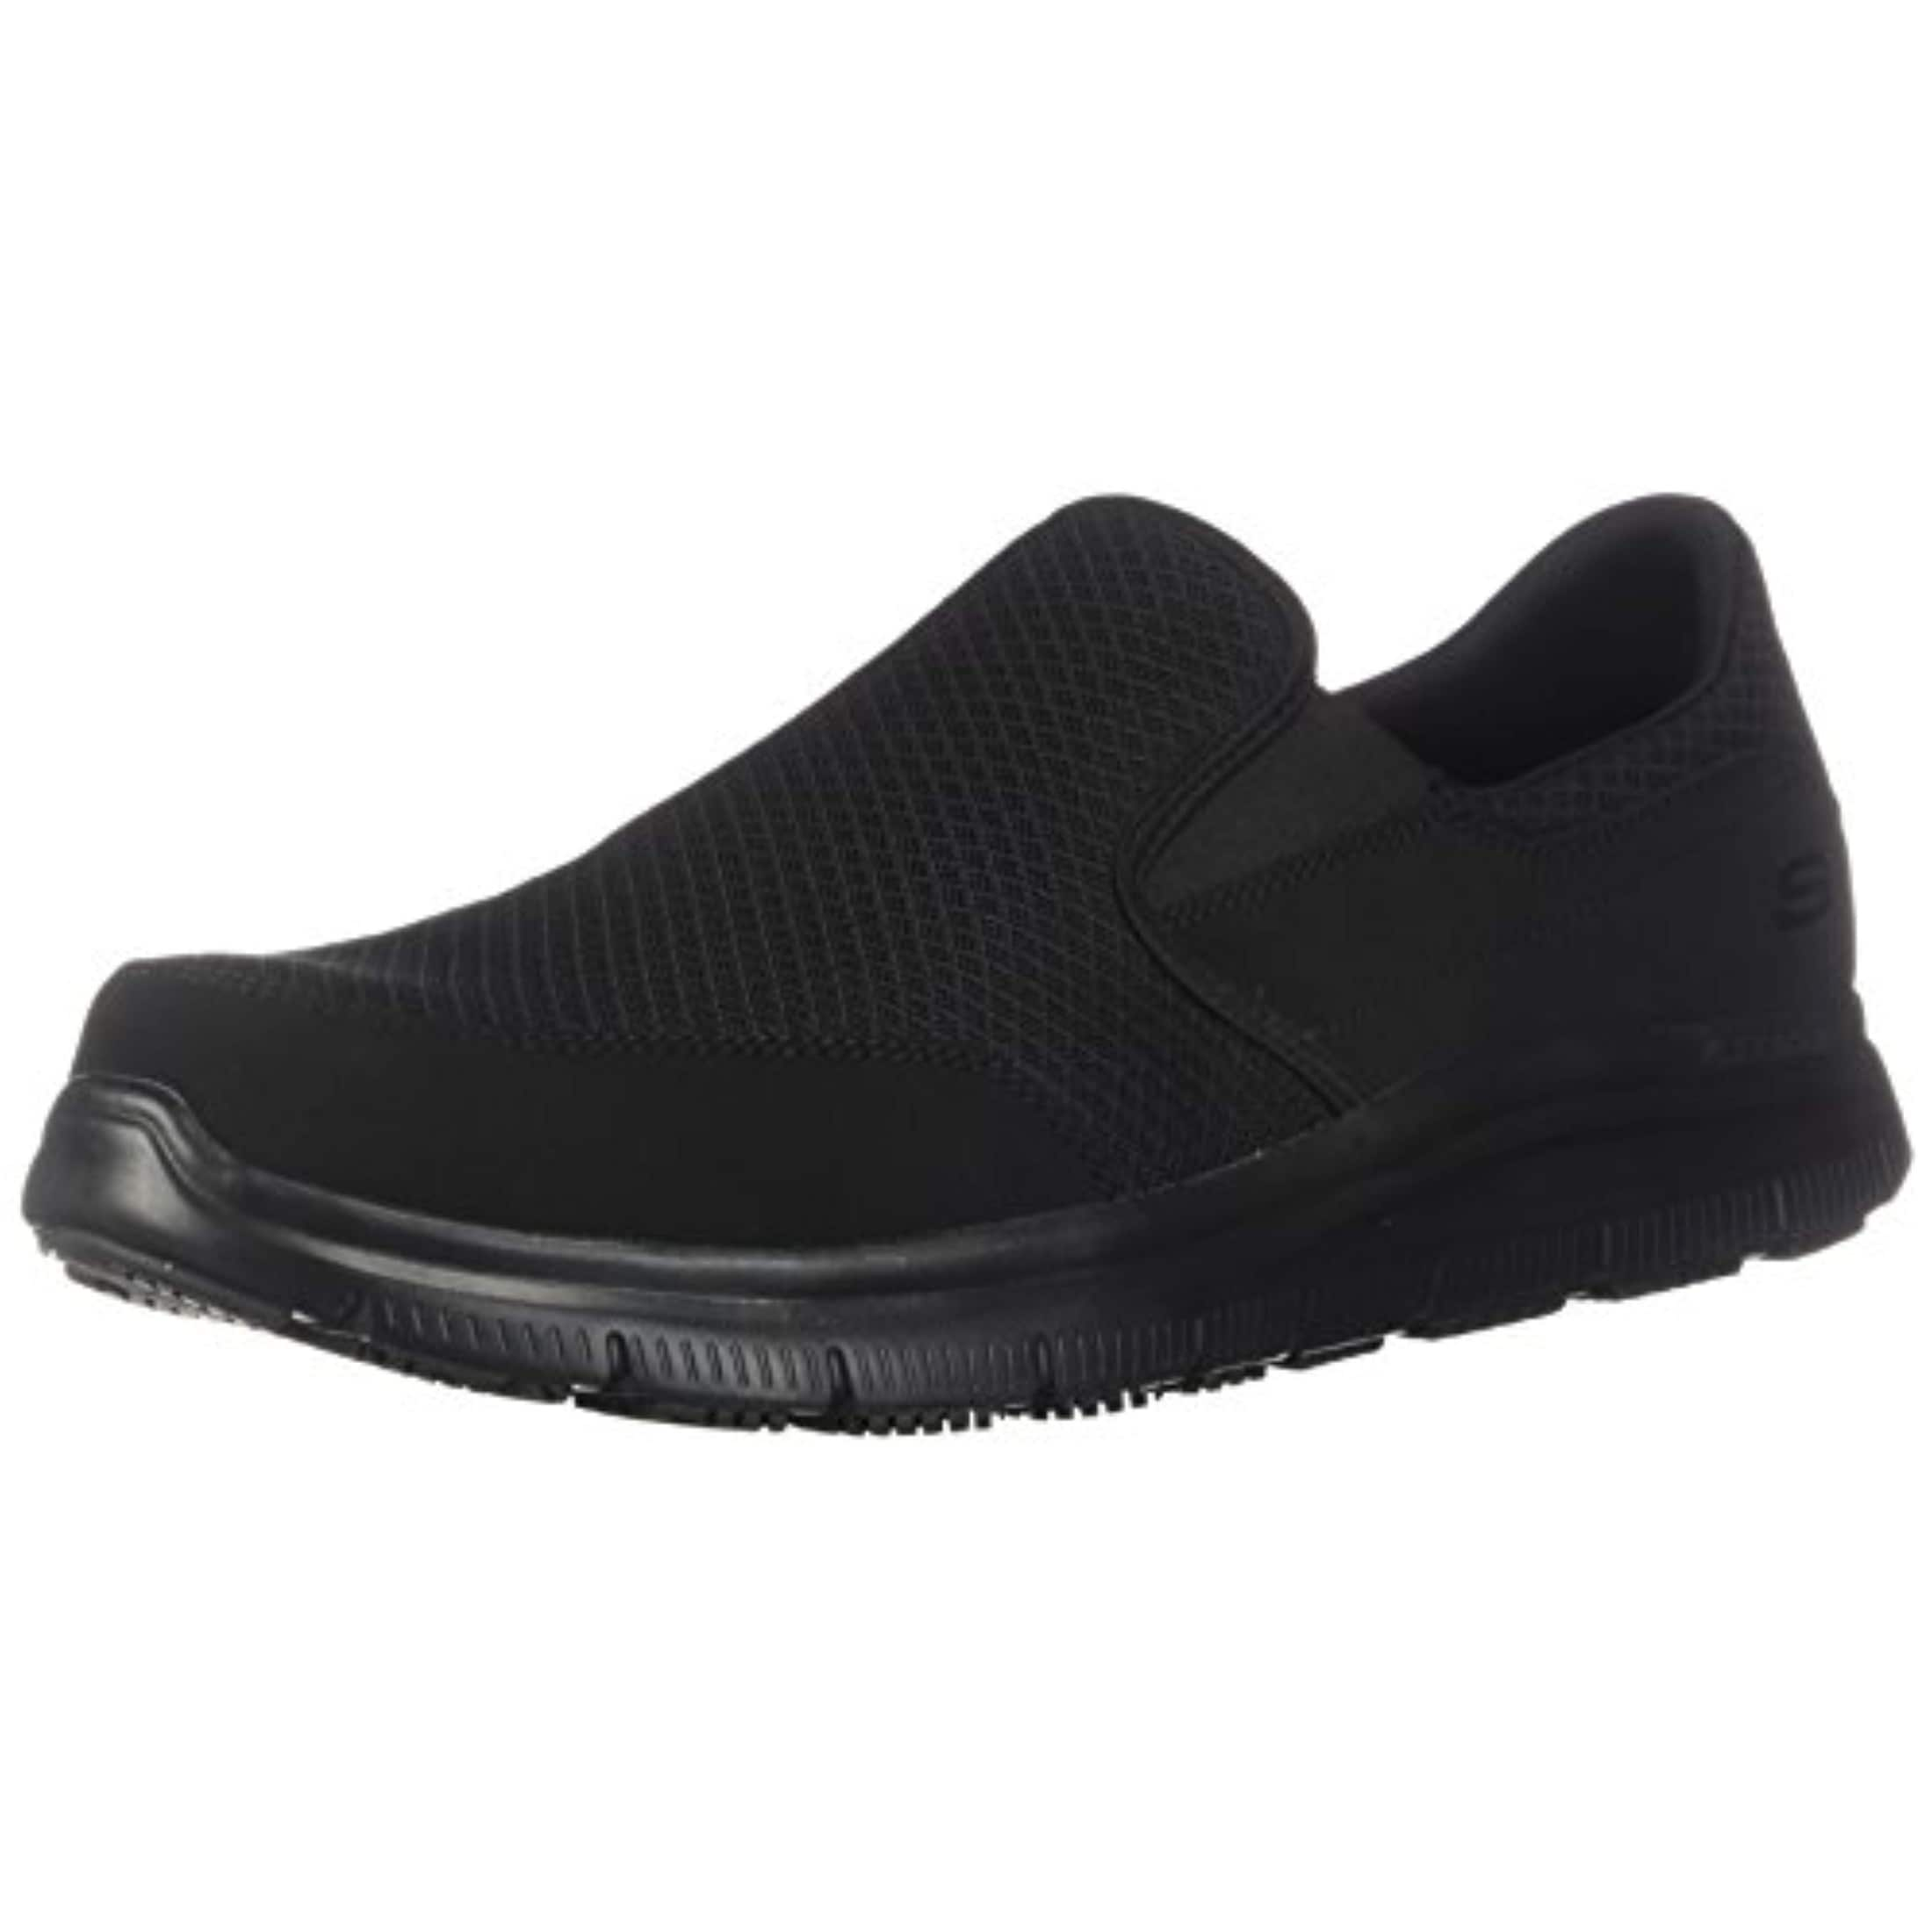 15ce3a1f06983 Skechers Shoes | Shop our Best Clothing & Shoes Deals Online at Overstock